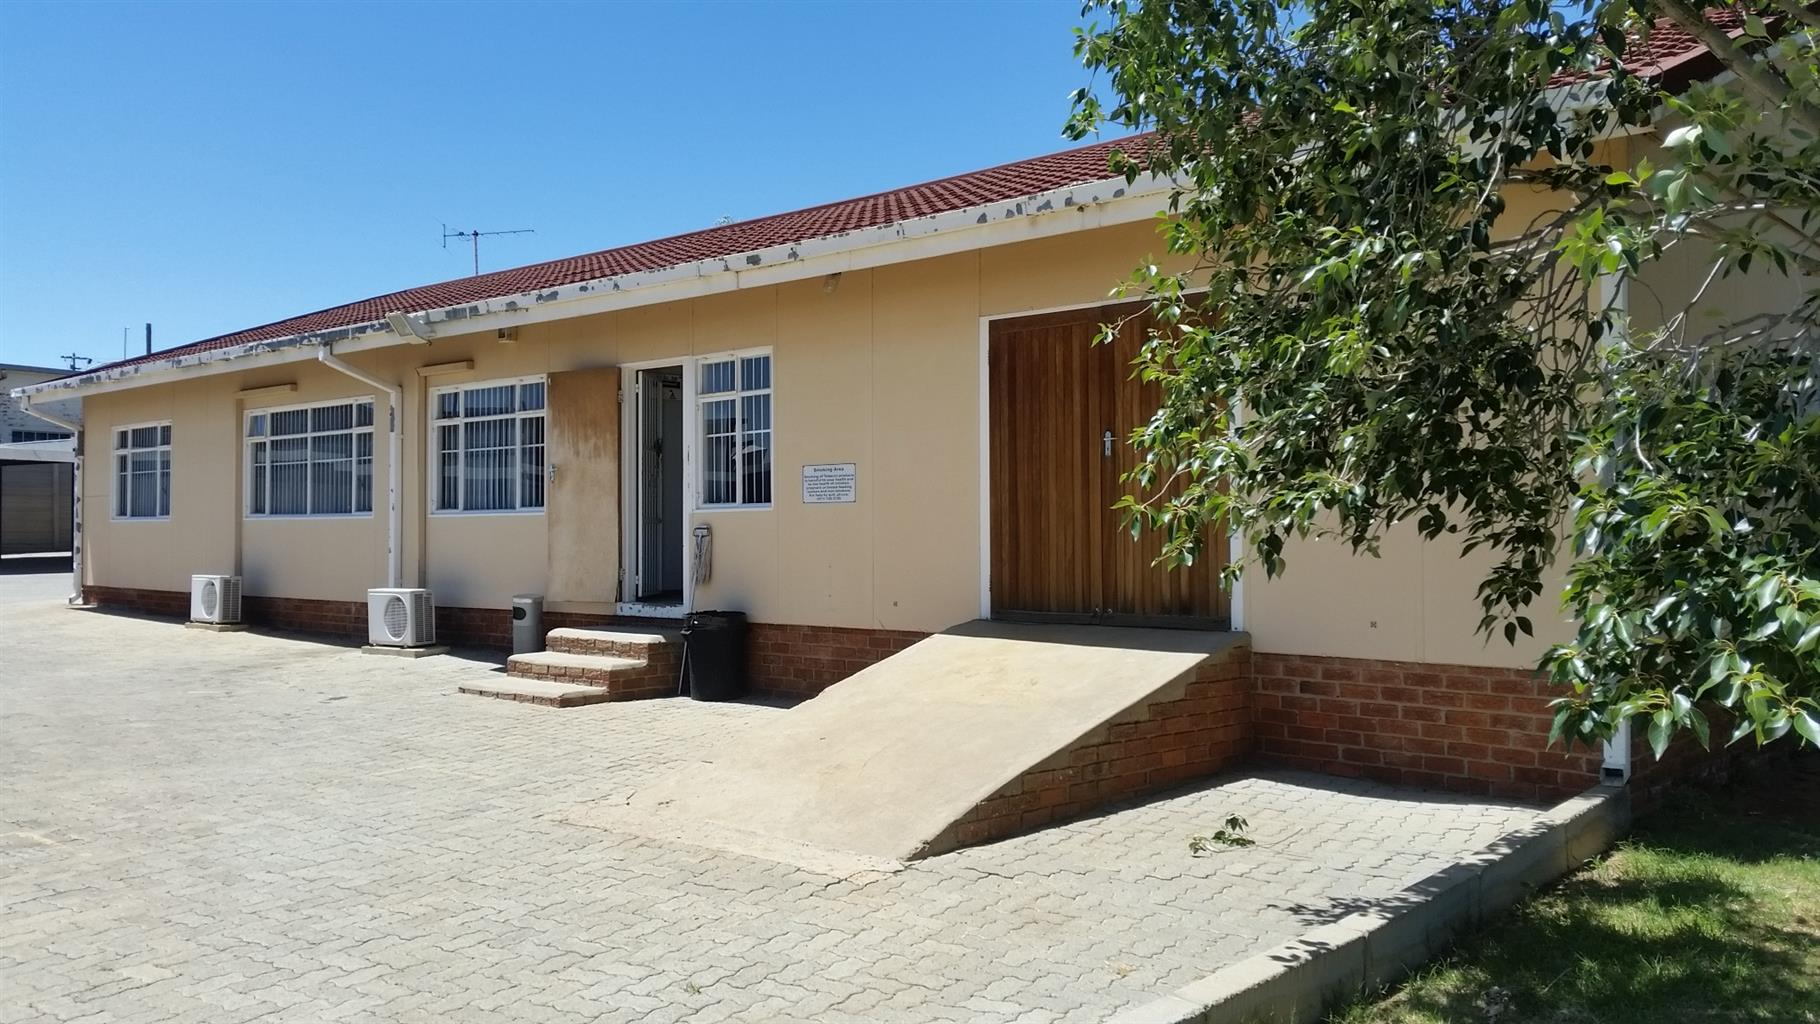 Online Auction of Telkom Property in Odendaalrus, Free State